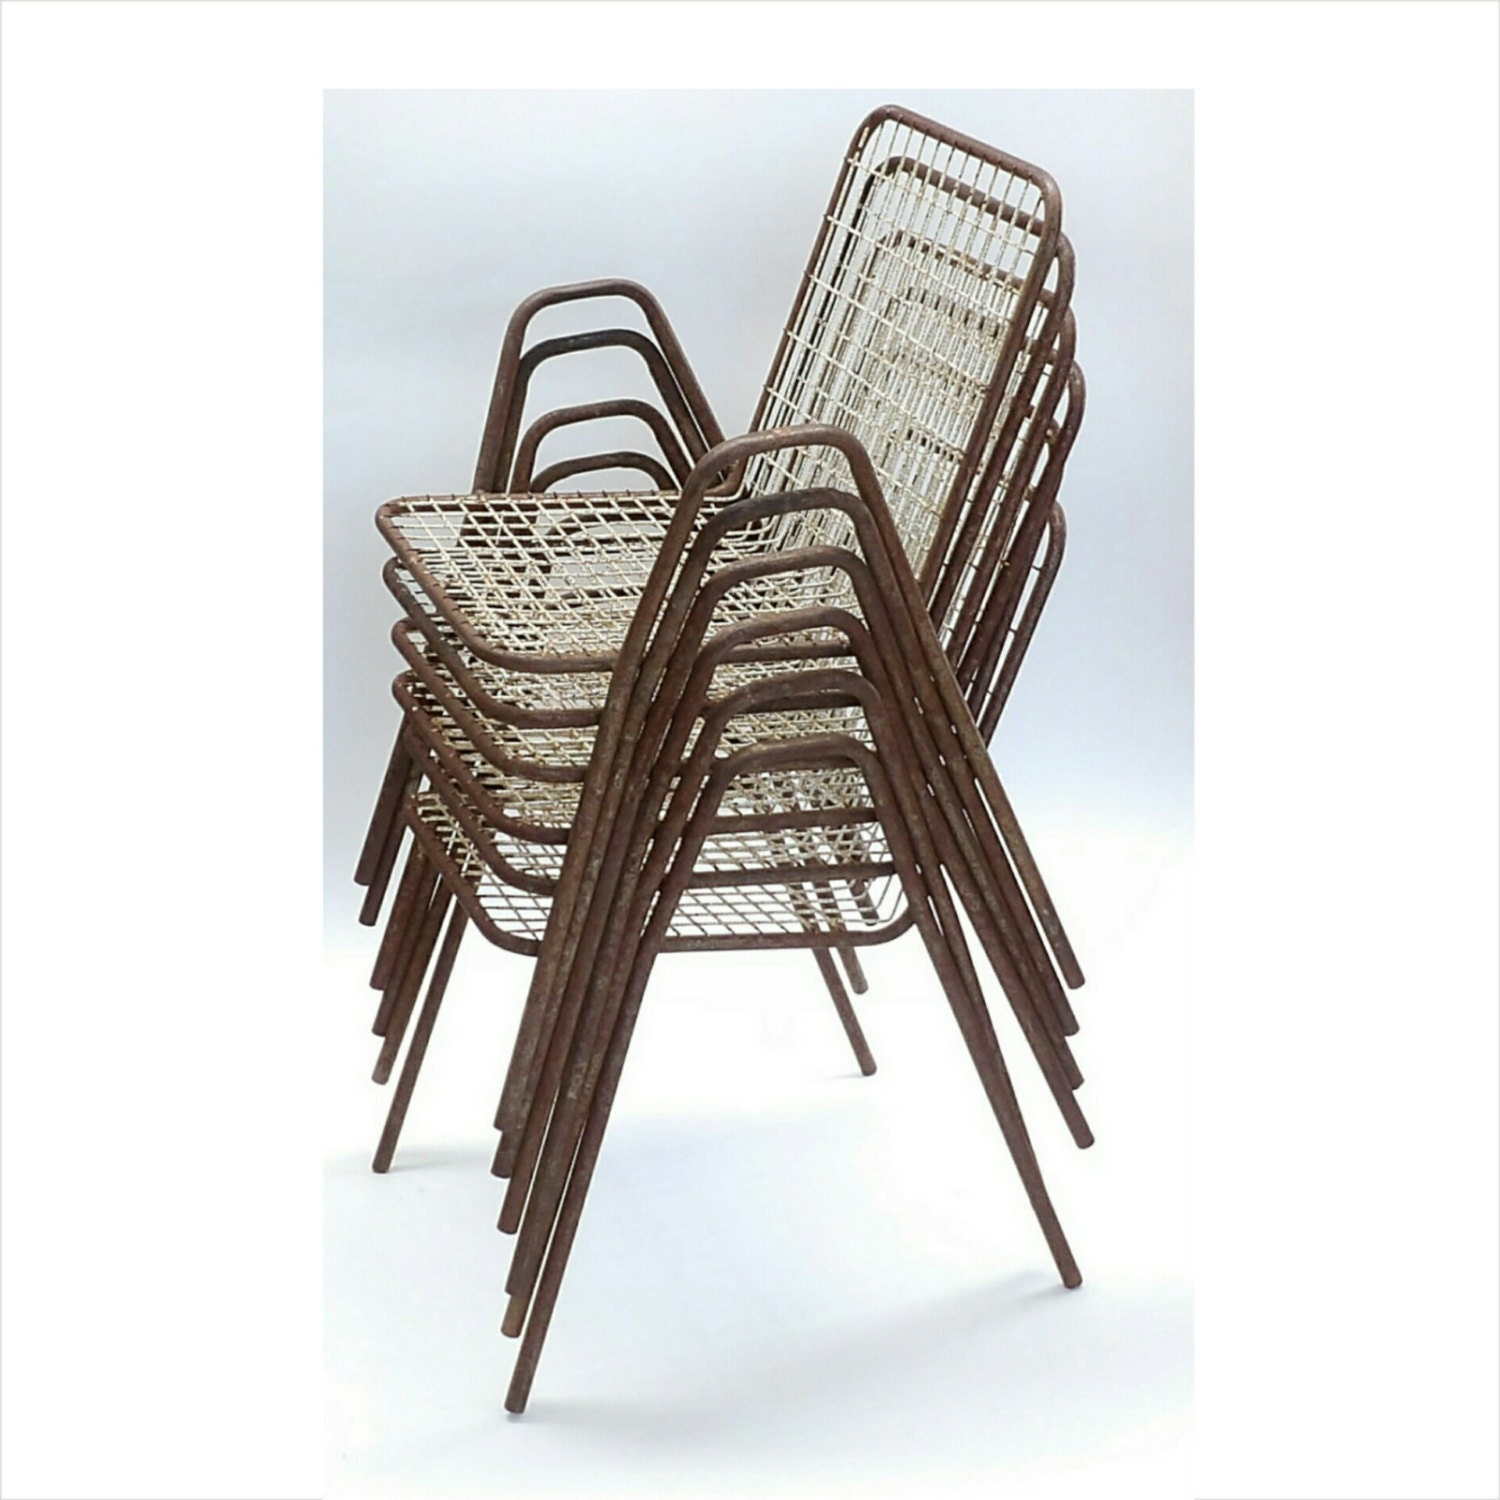 Vintage Emu Italian Outdoor Furniture Metal Made In Italy Patio Chairs Stacking Set Of